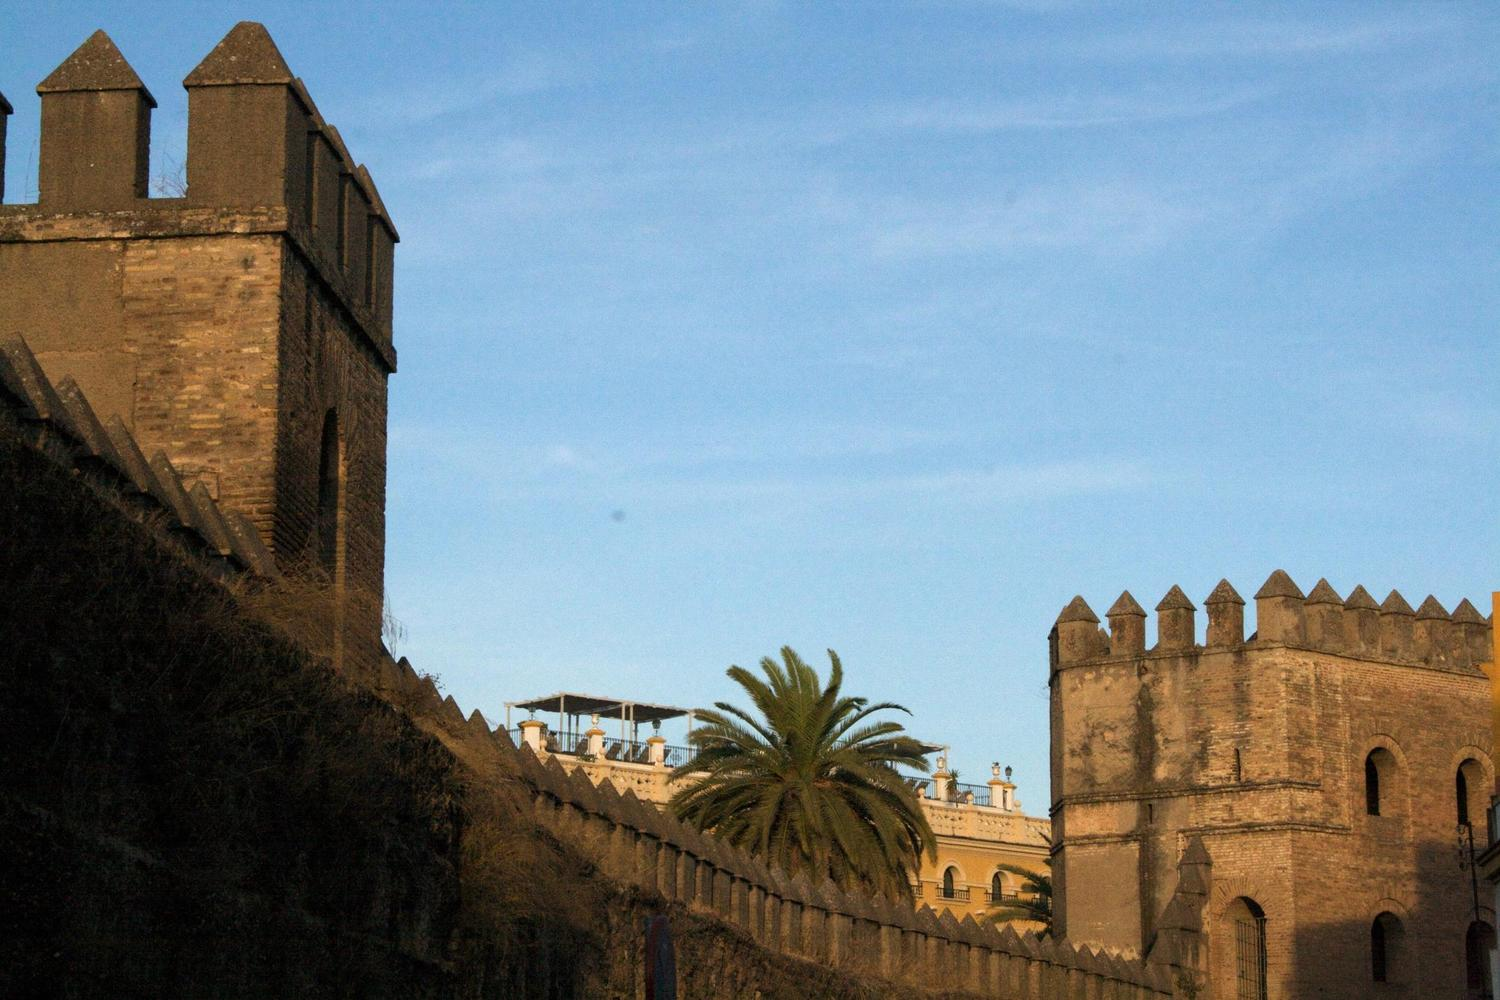 The Almoravid city walls of Seville